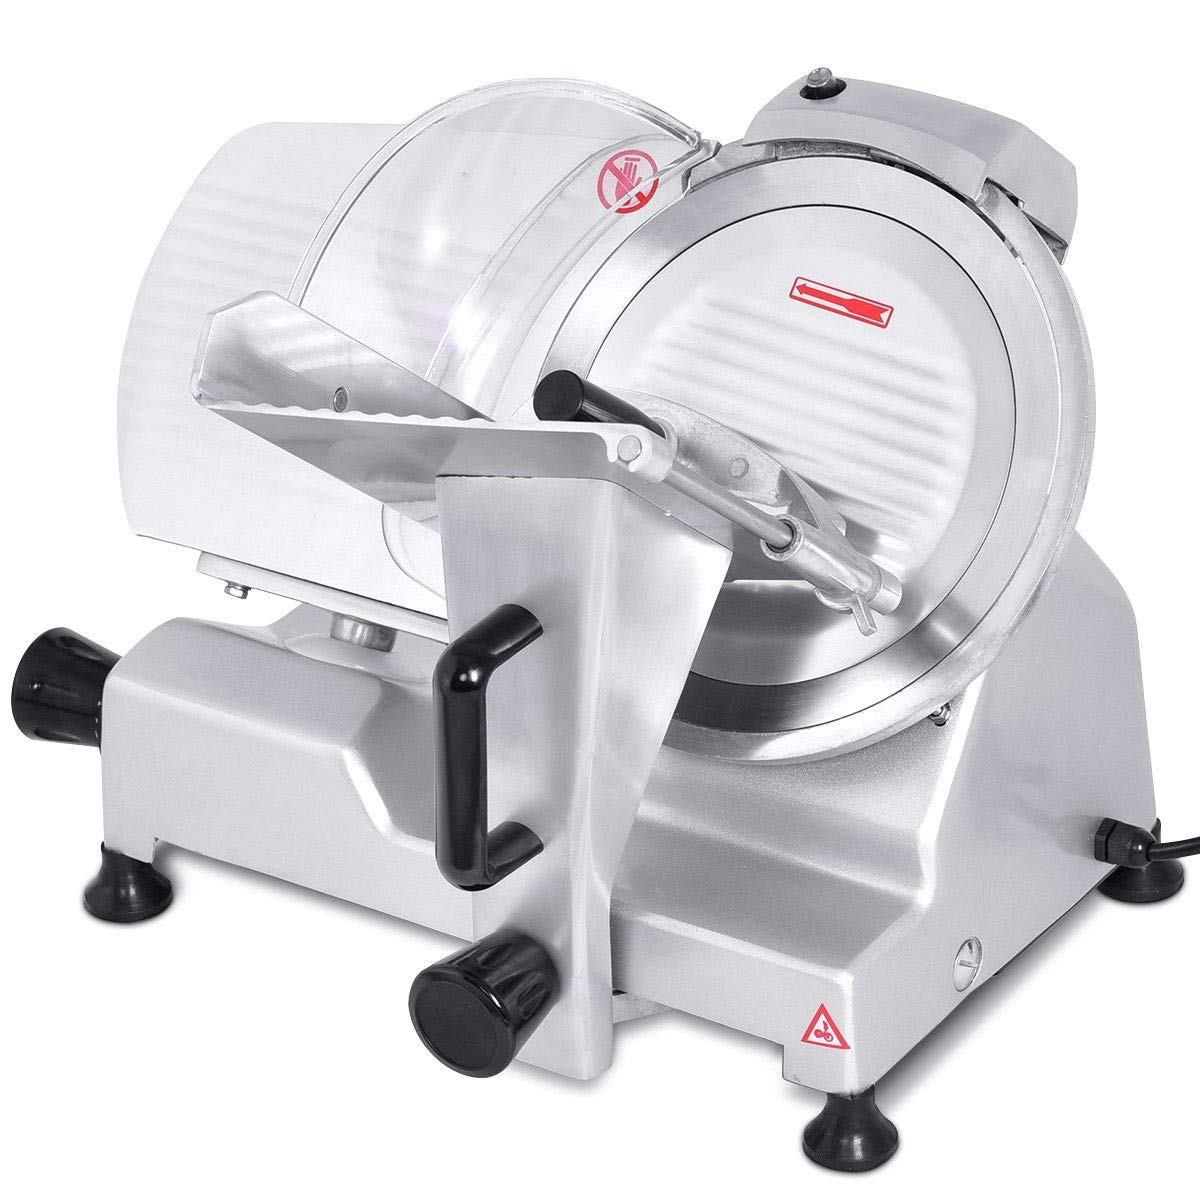 "zwan 10"" Blade Commercial Meat Slicer Deli Meat Cheese Food Slicer with Ebook"